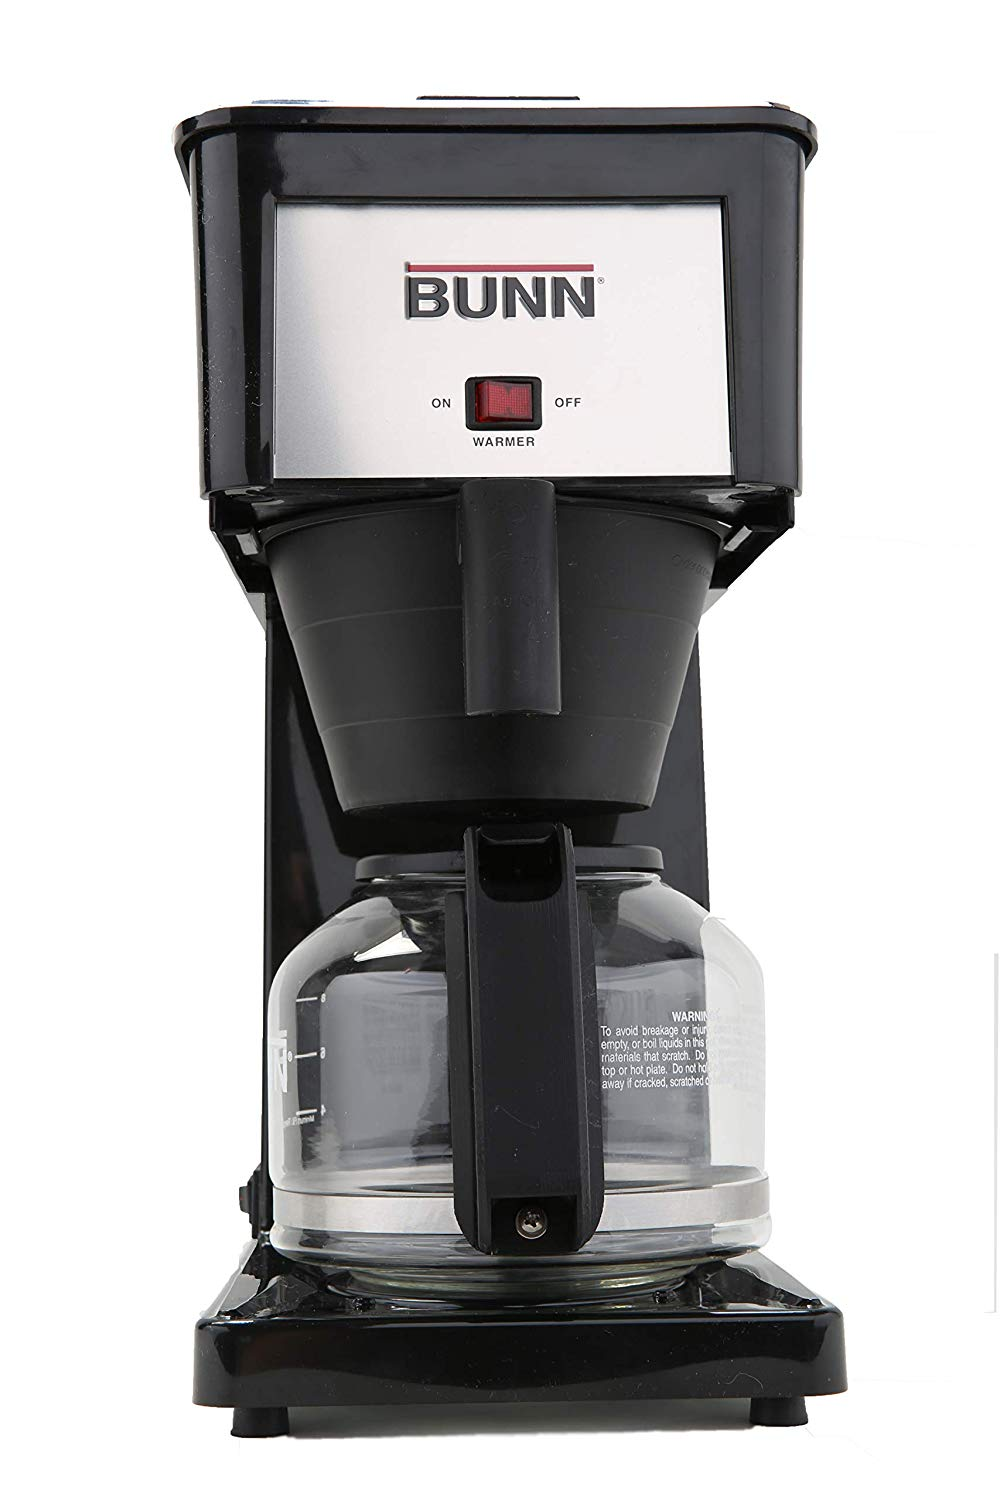 5 Best Drip Coffee Maker Reviews 2020 - Top Rated Buyer's Guide